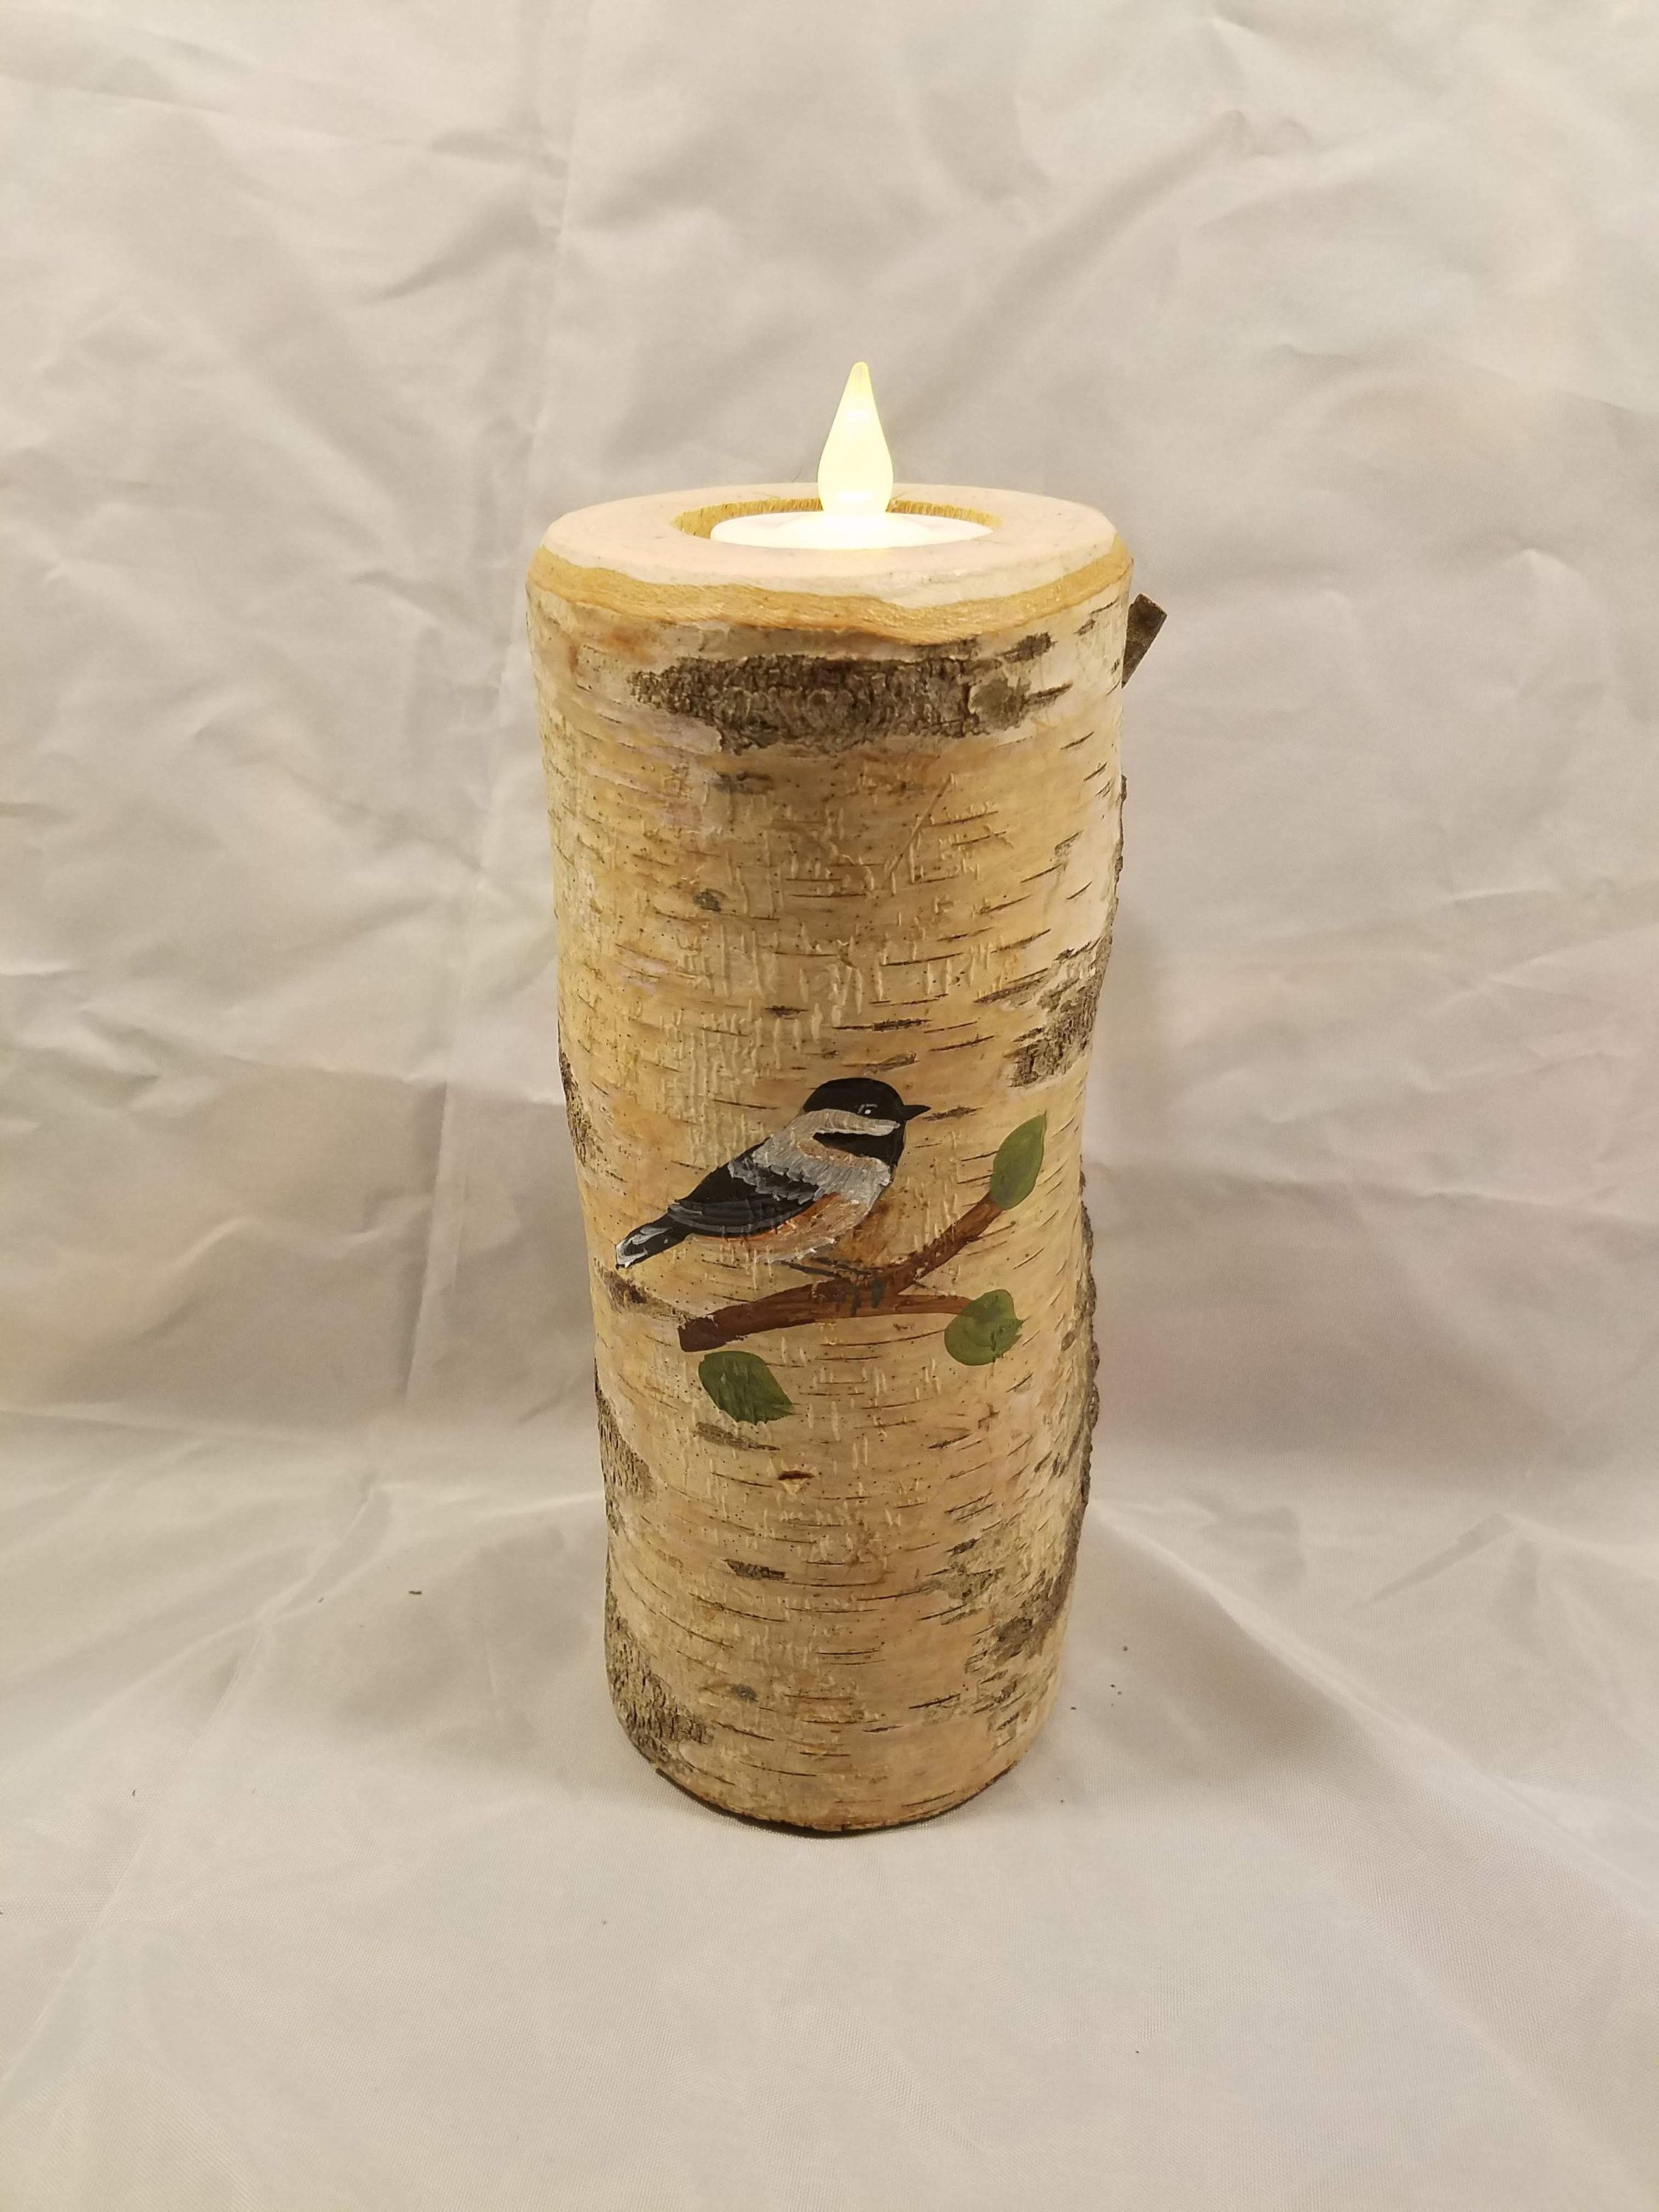 for woodland rustic home decor Chickadee candle holder candle is 6 tall Hand painted on a real birch tree